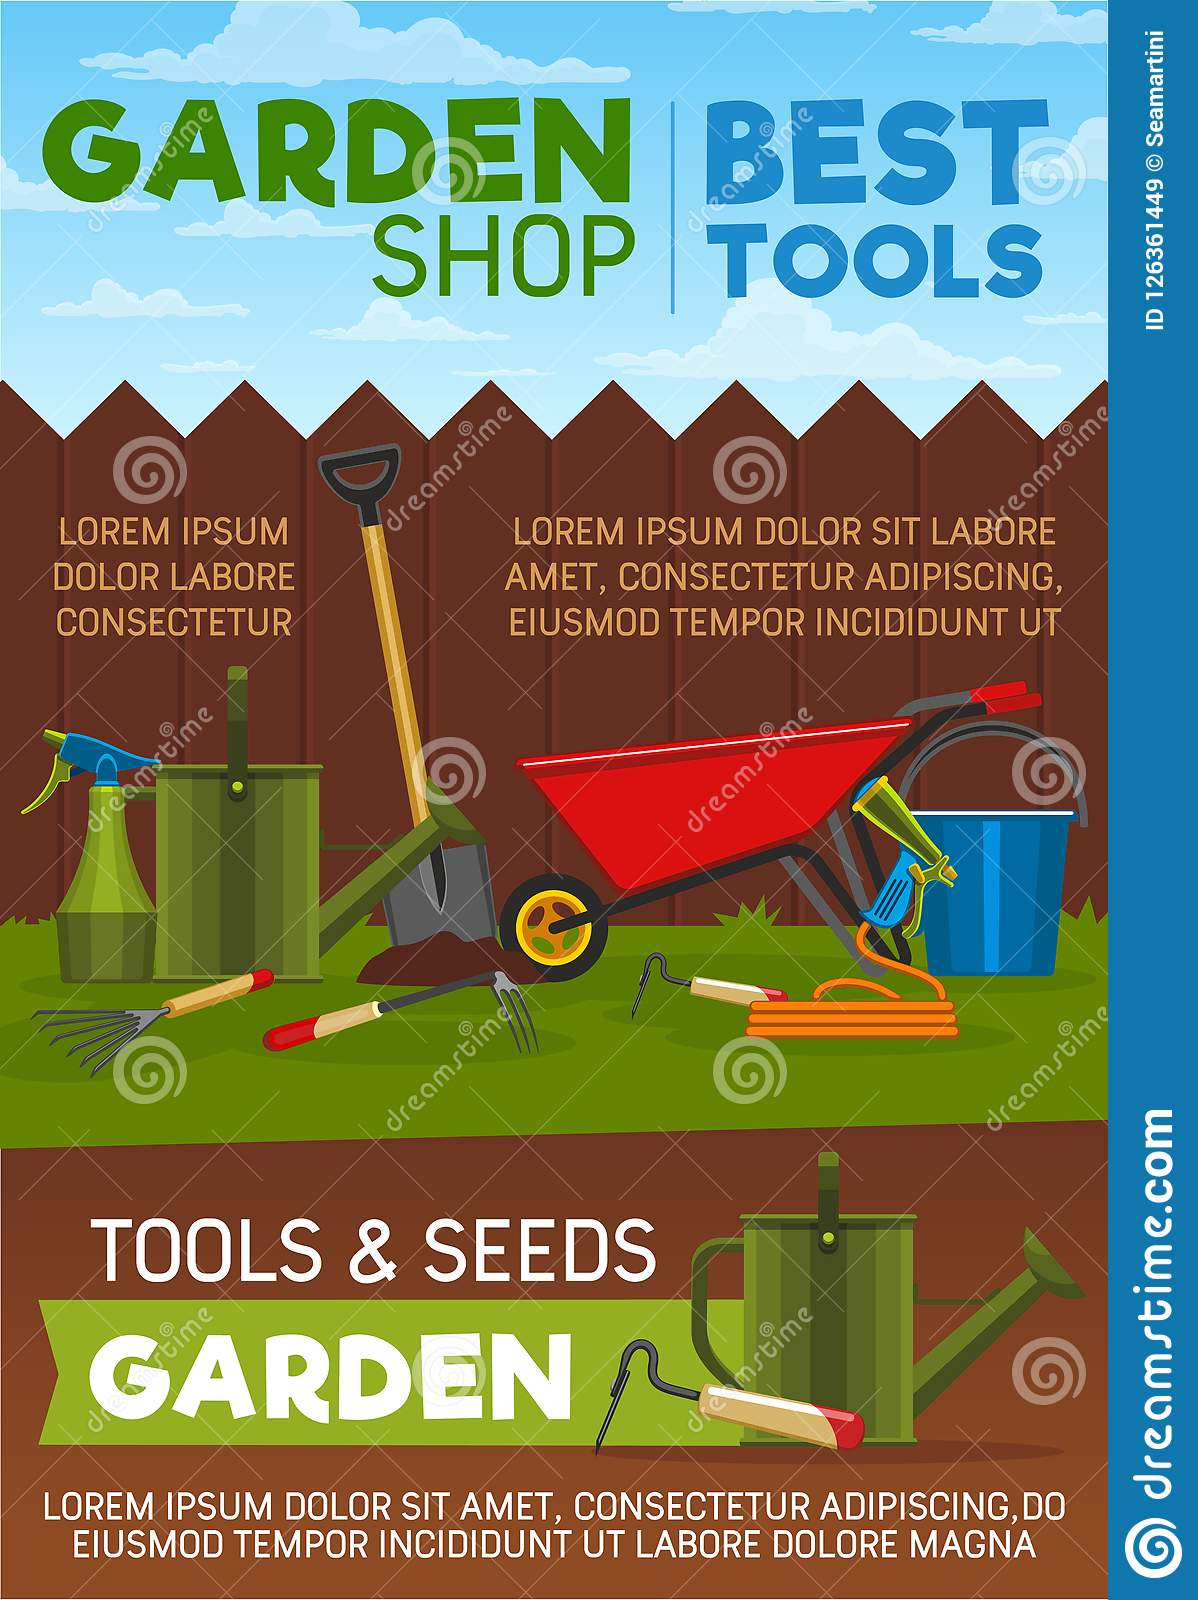 Gardening Tools, Items And Equipment Stock Vector - Illustration of ...